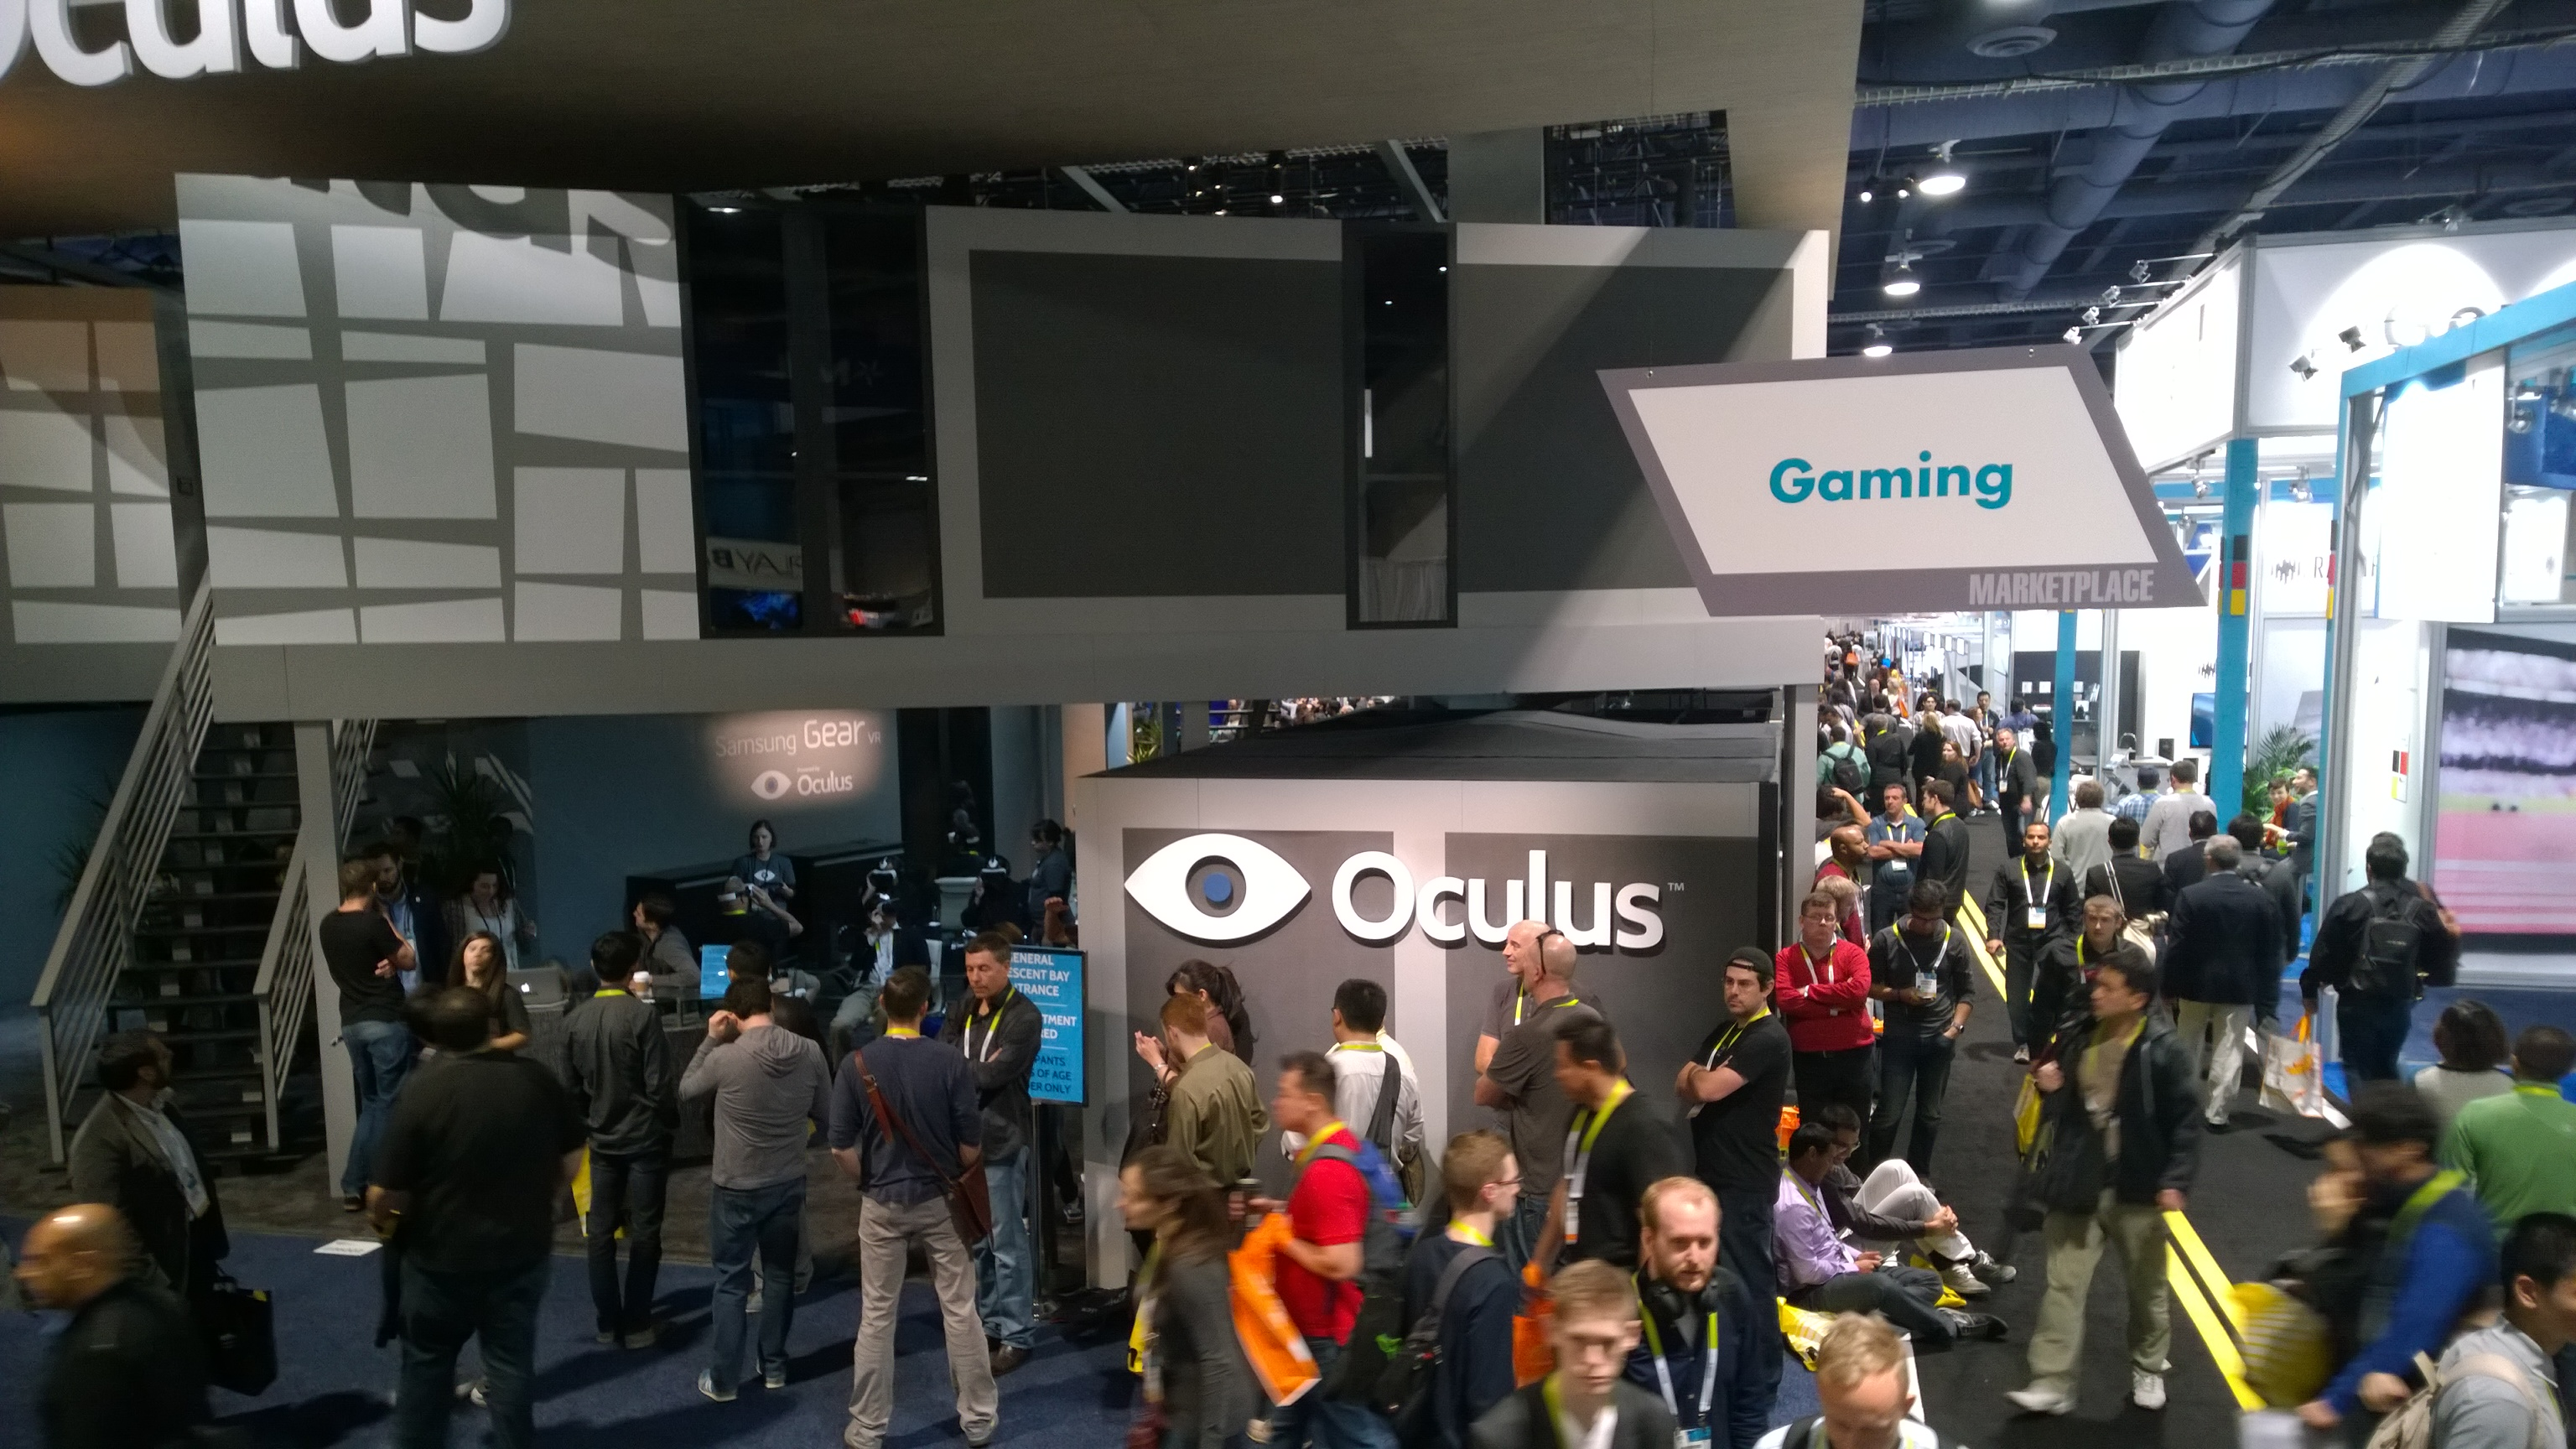 The line to try the Oculus Rift